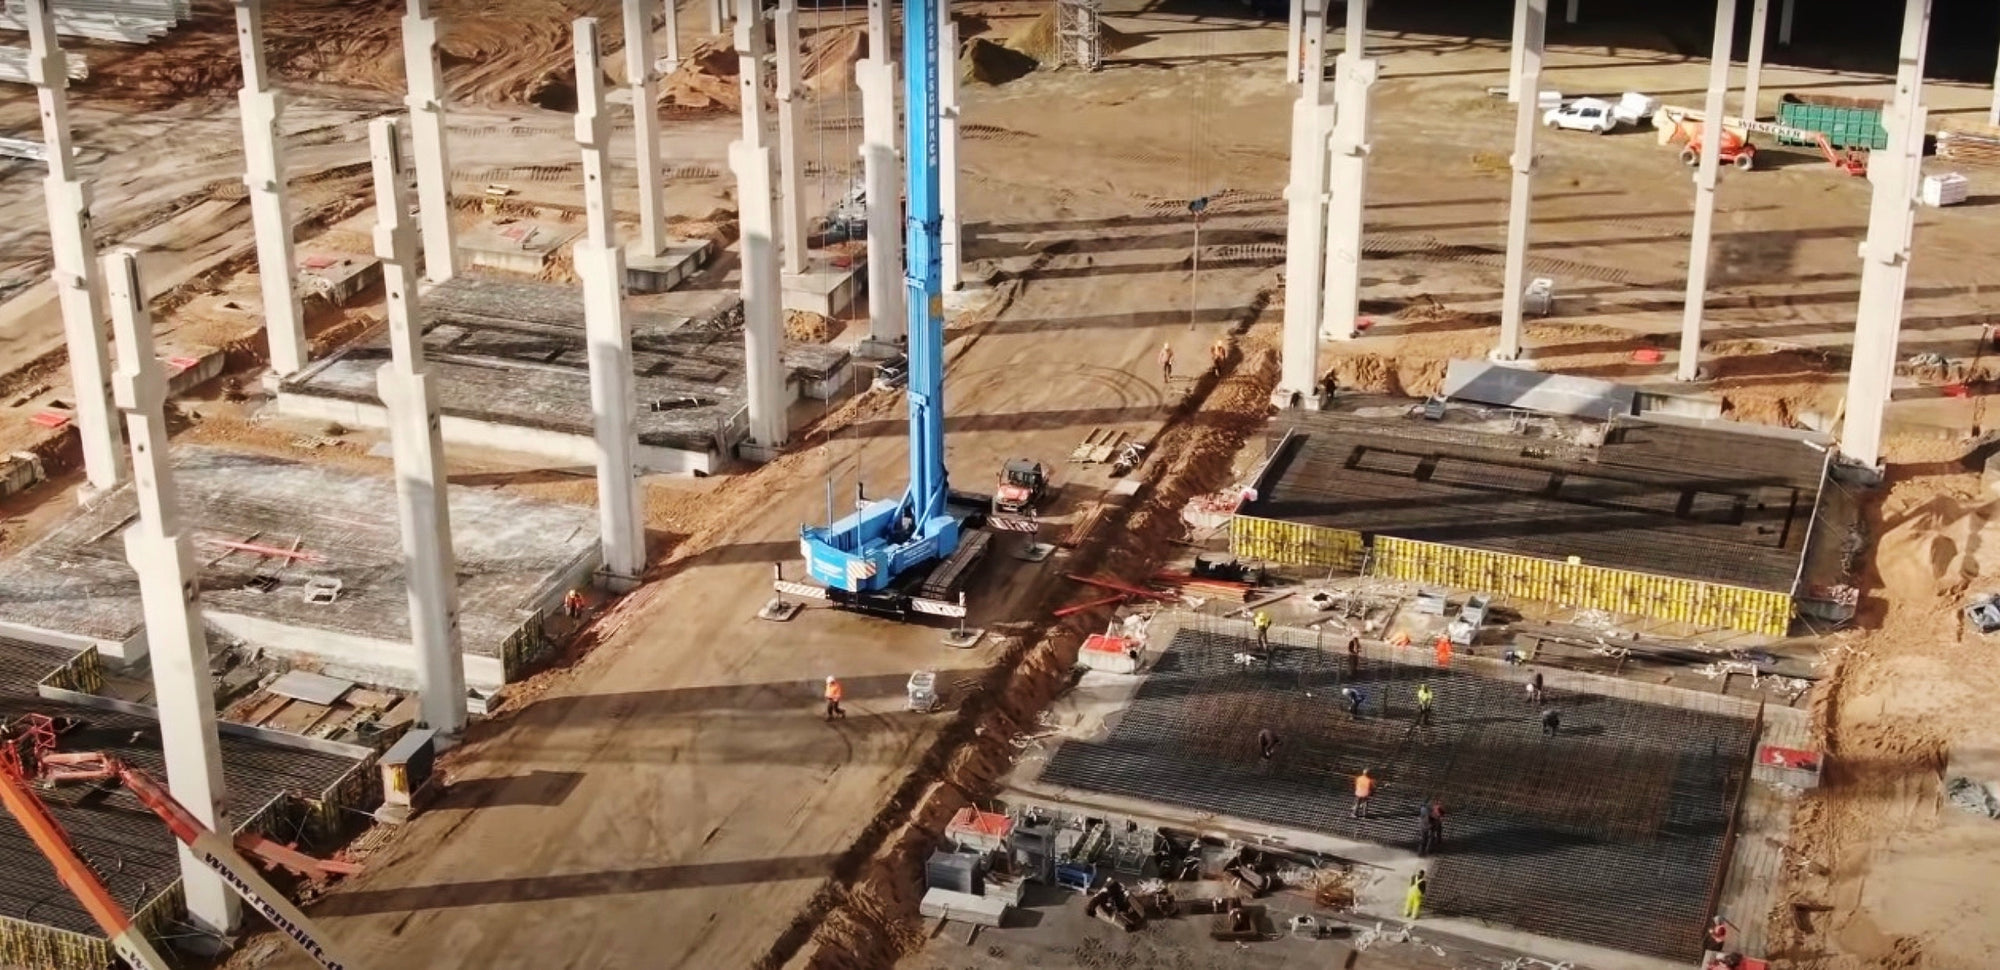 Tesla Giga Berlin Presses On: Foundation Work Starts for Giga Press Machines